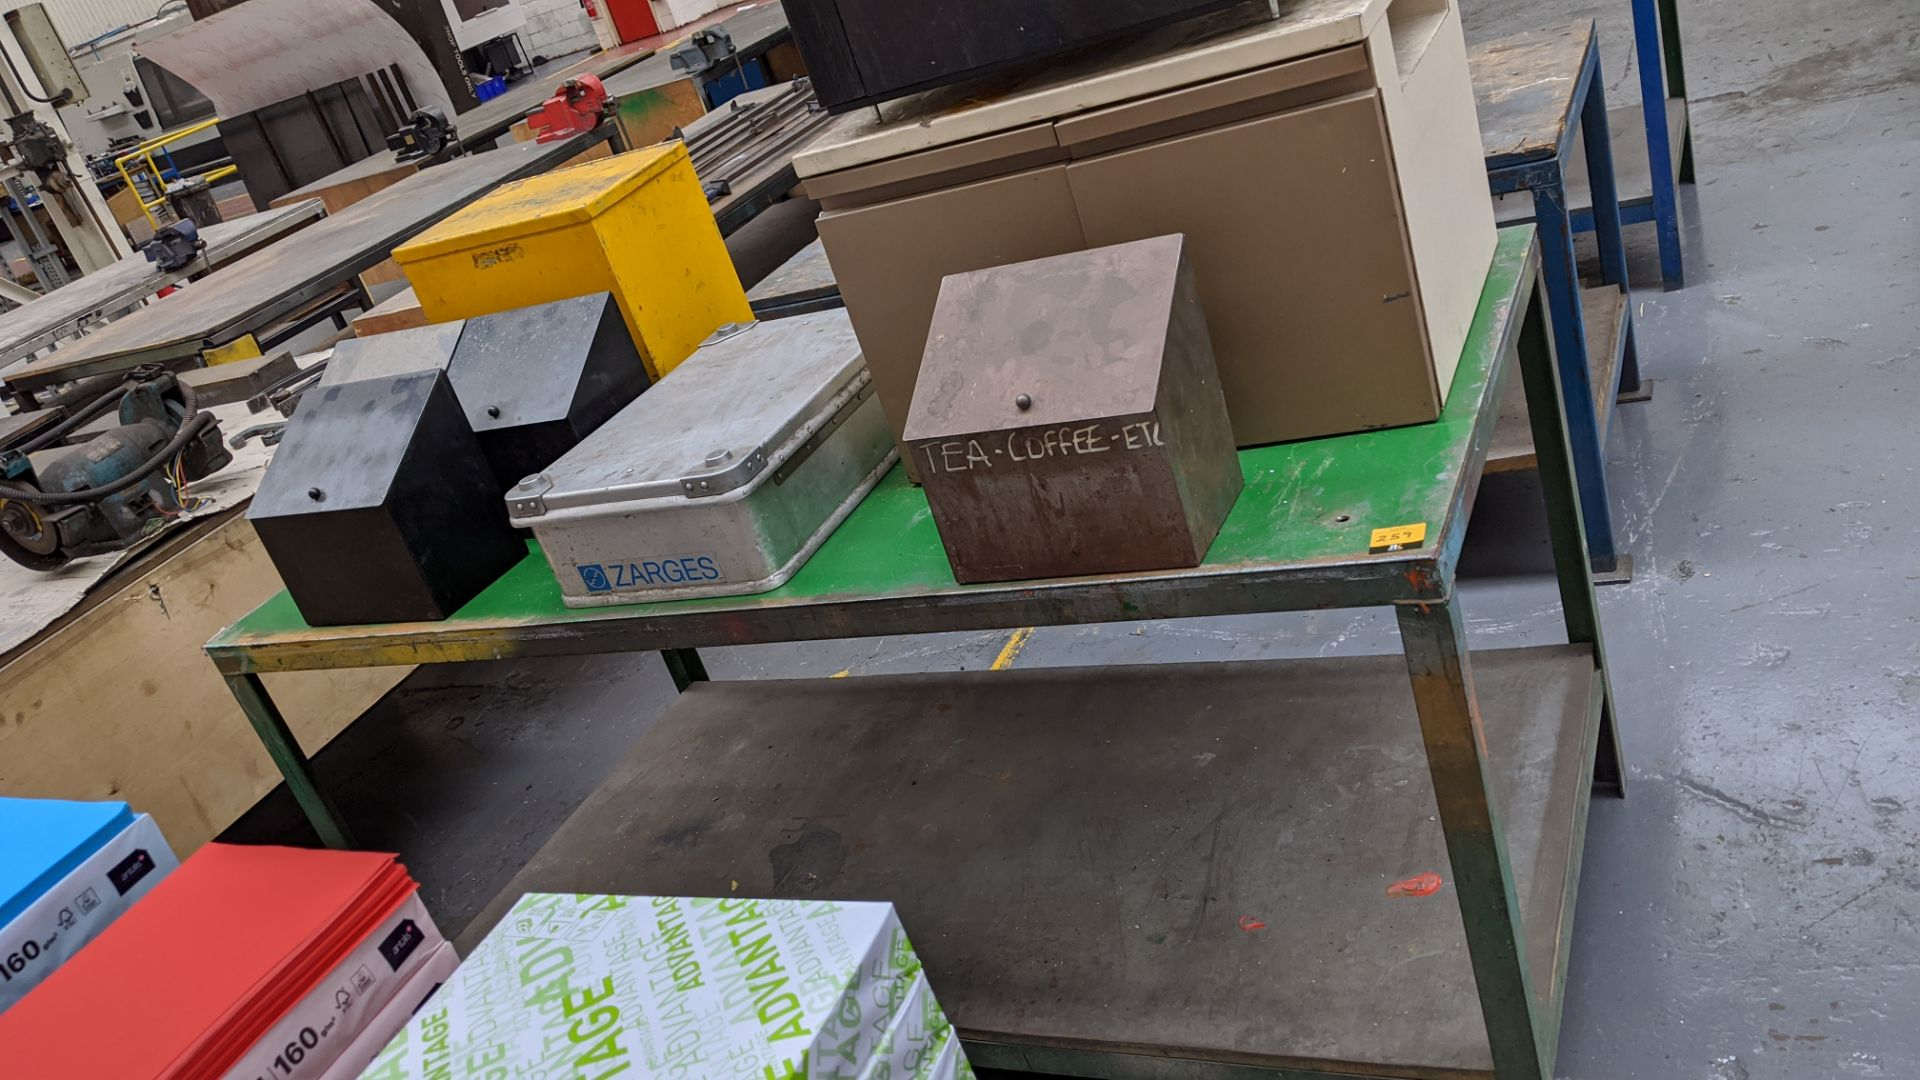 Lot 259 - 3 benches plus quantity of small storage units located on one of the benches